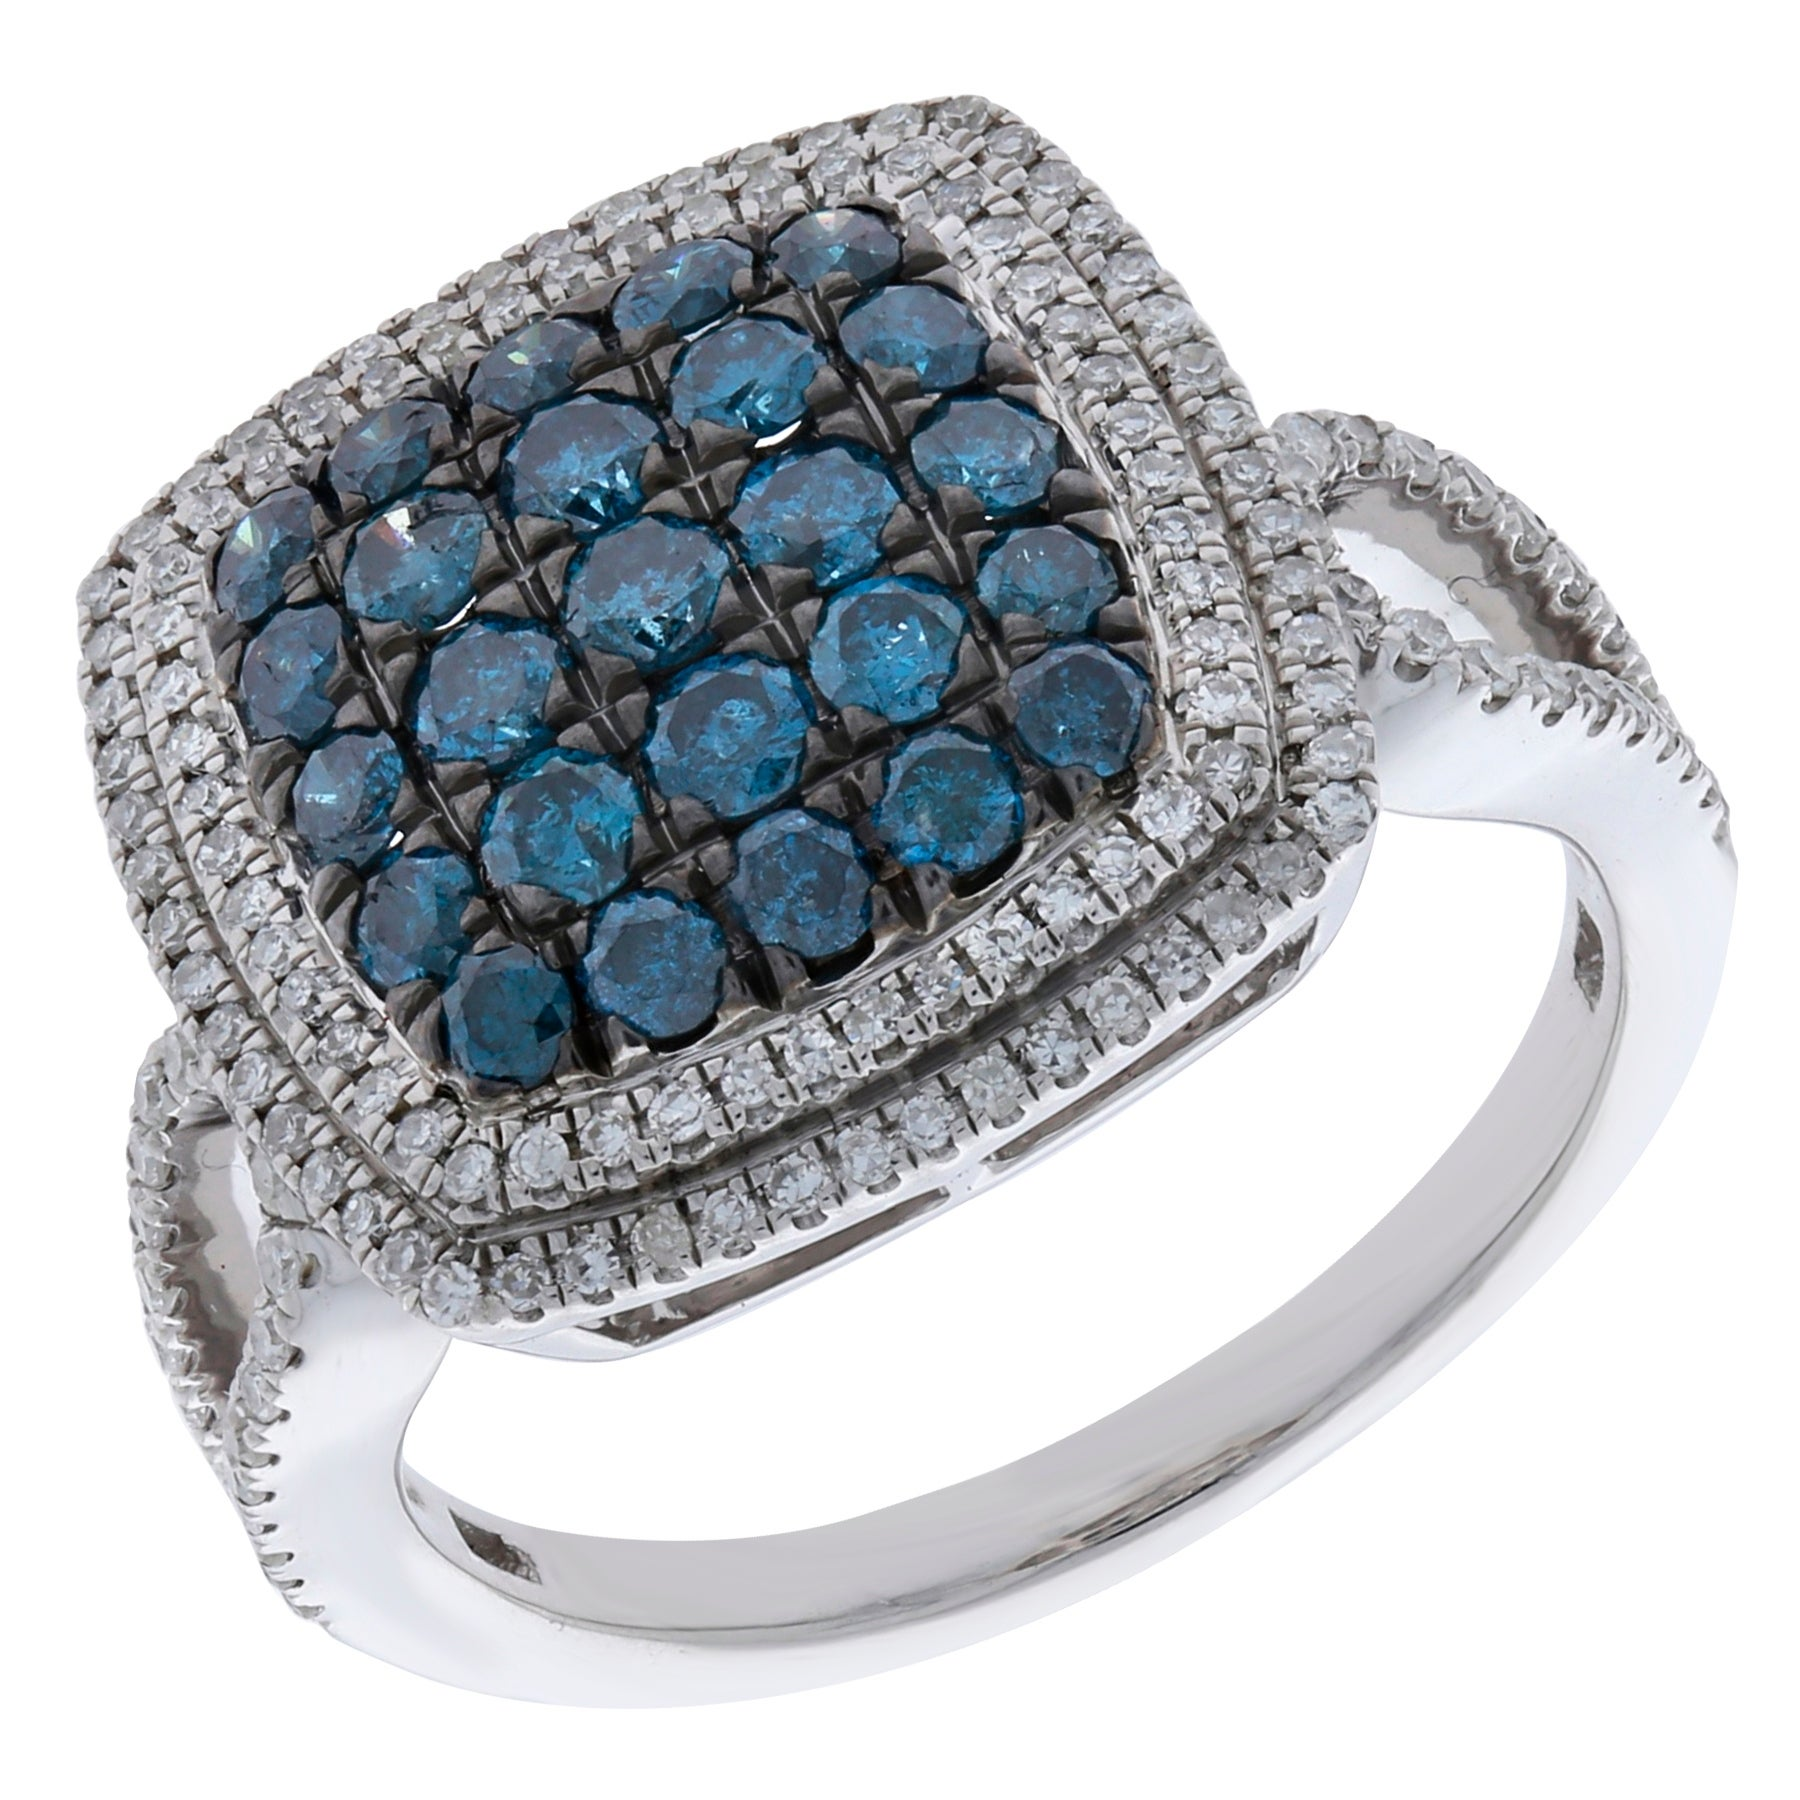 Prism Jewel Round Brilliant Cut Blue Color Diamond Cluster Ring